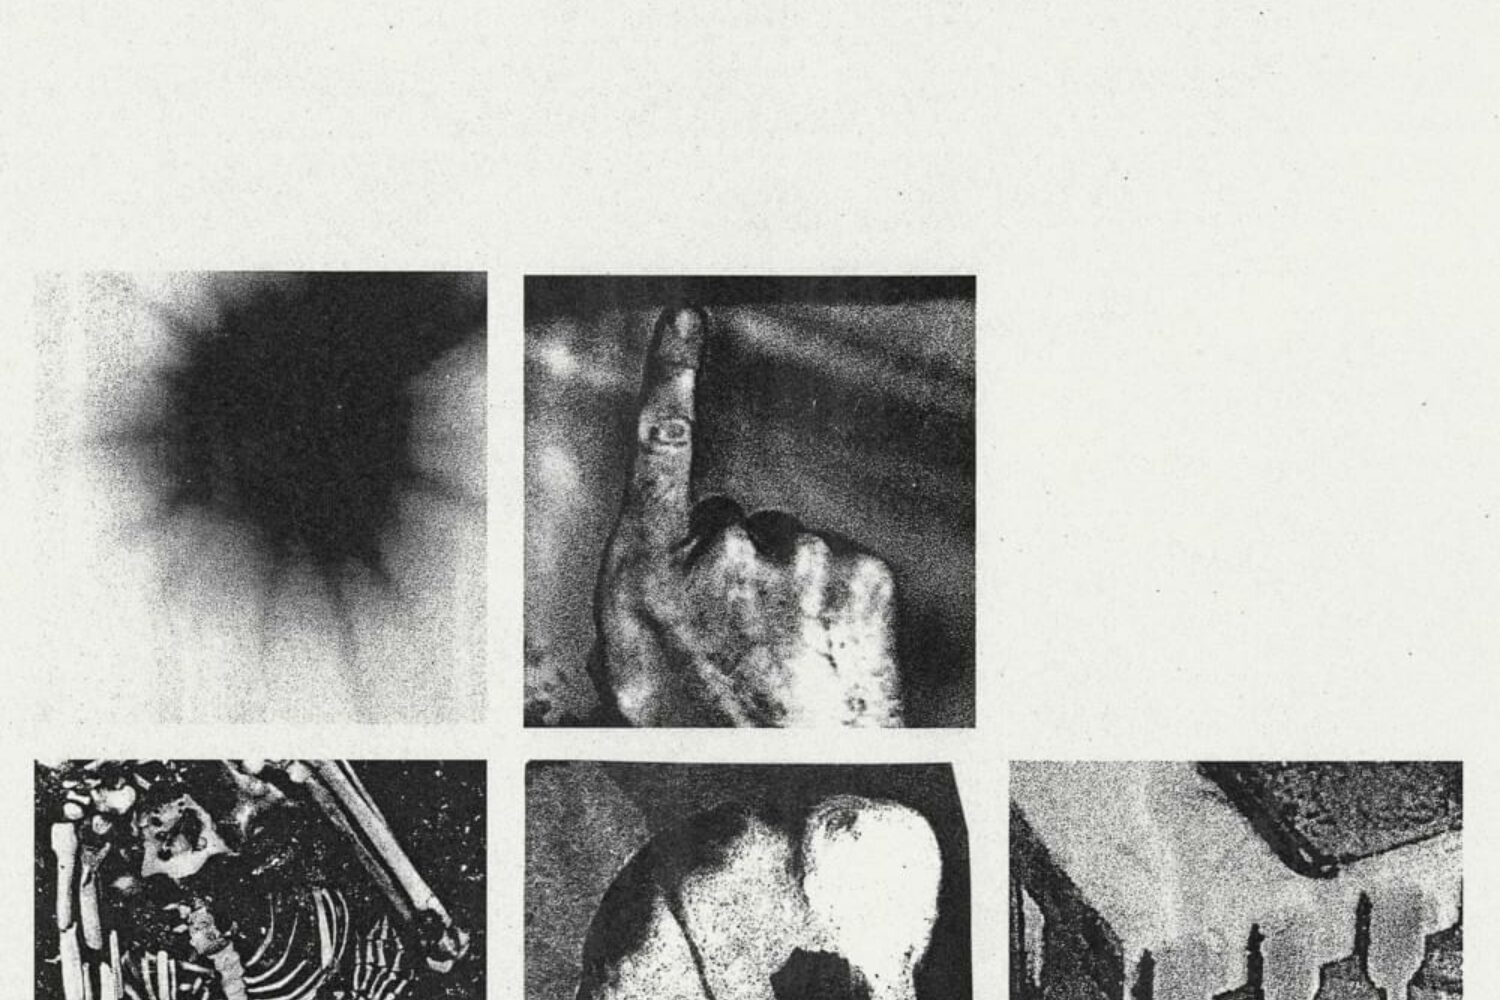 Nine Inch Nails - Bad Witch